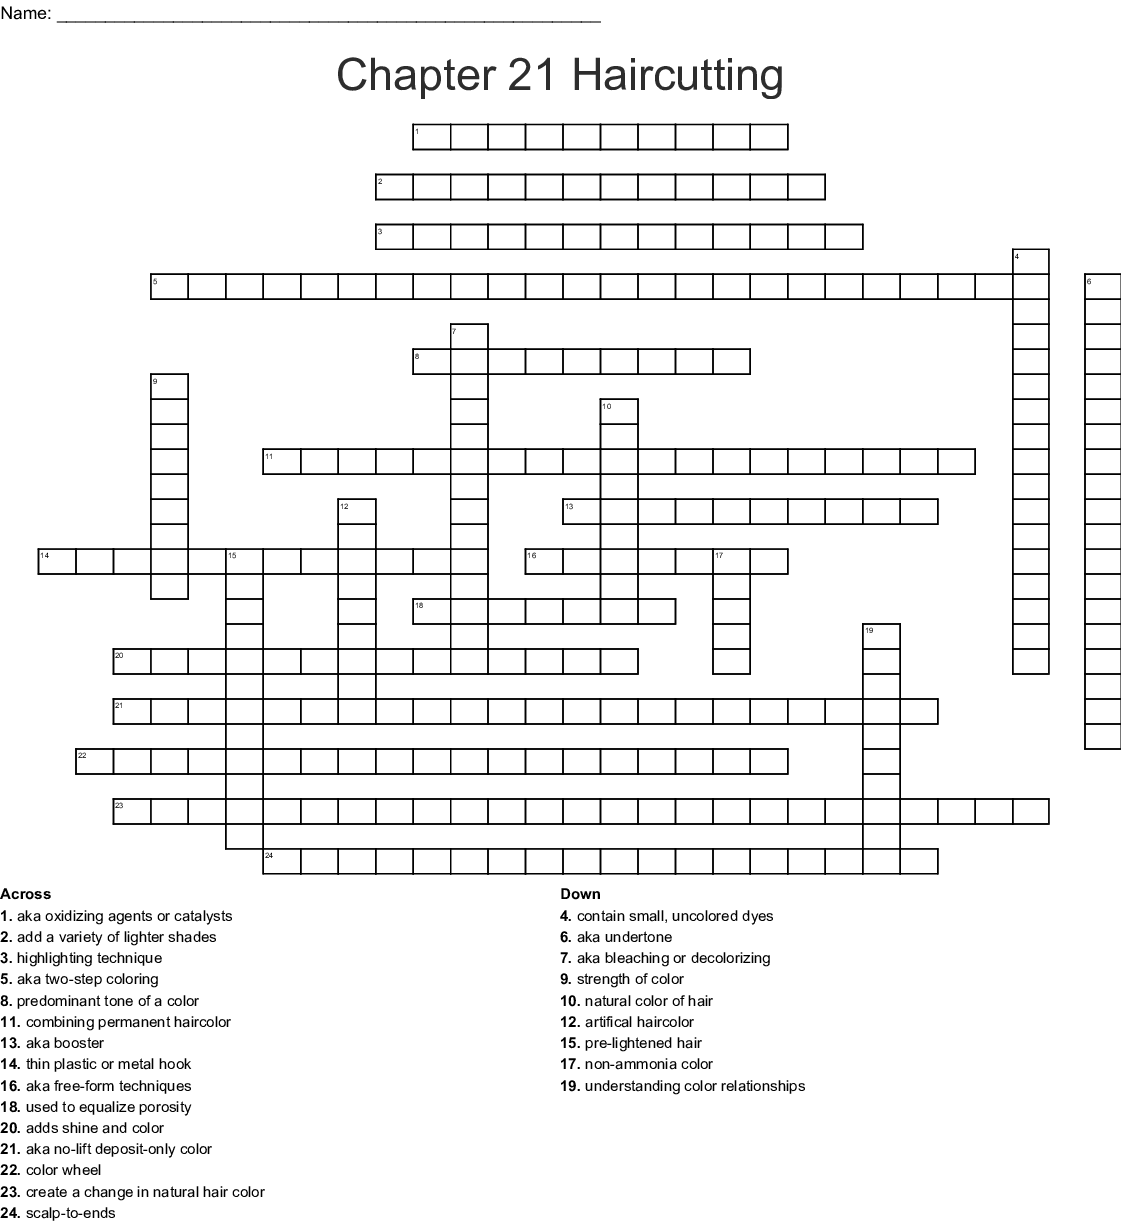 Haircoloring Chapter 21 Word Search